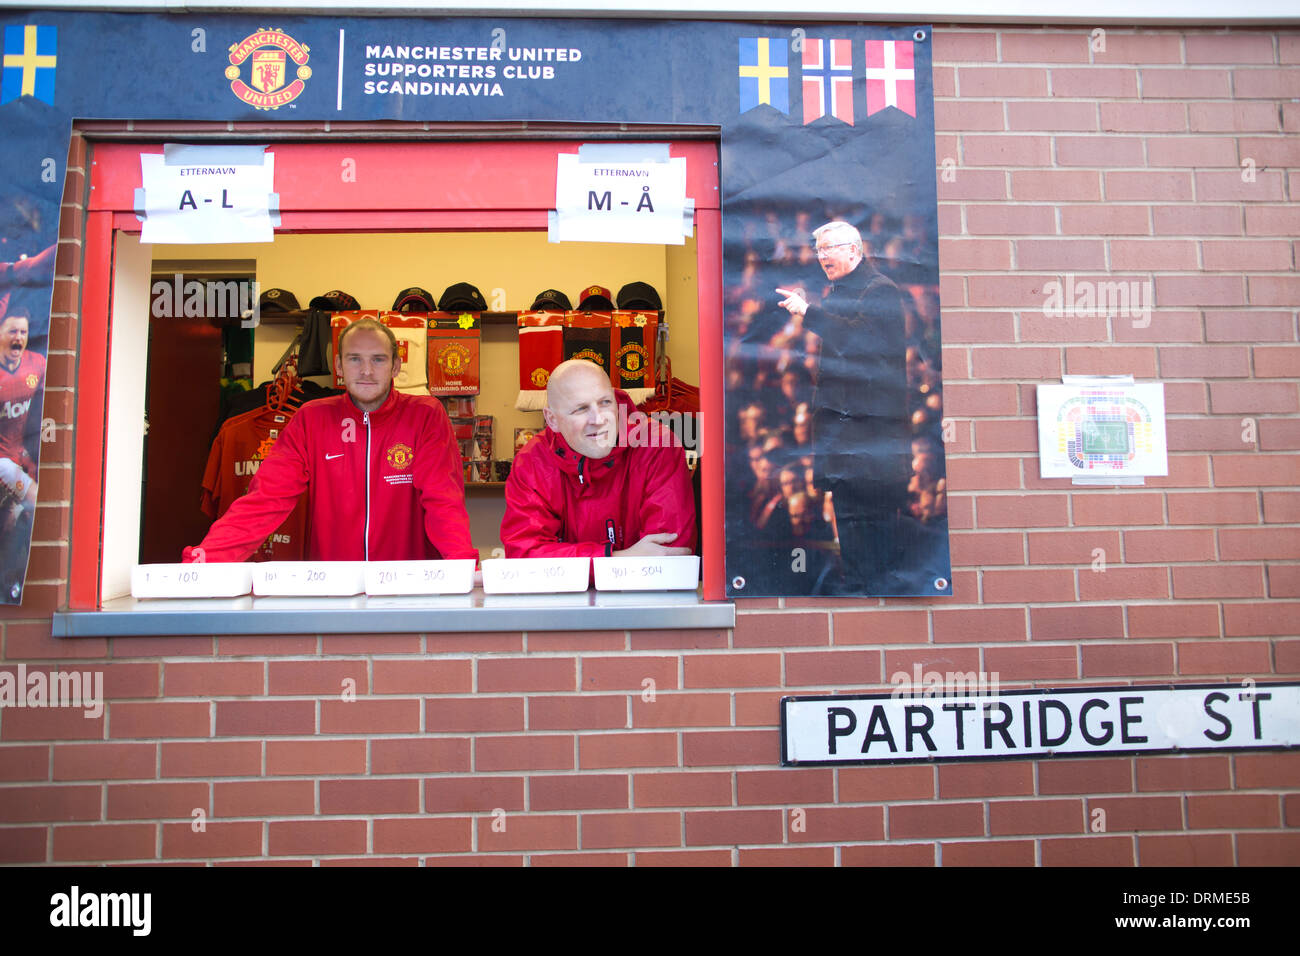 Manchester United Scandinavian Supporters Club on Partridge Street, at Old Trafford, Manchester United - Stock Image